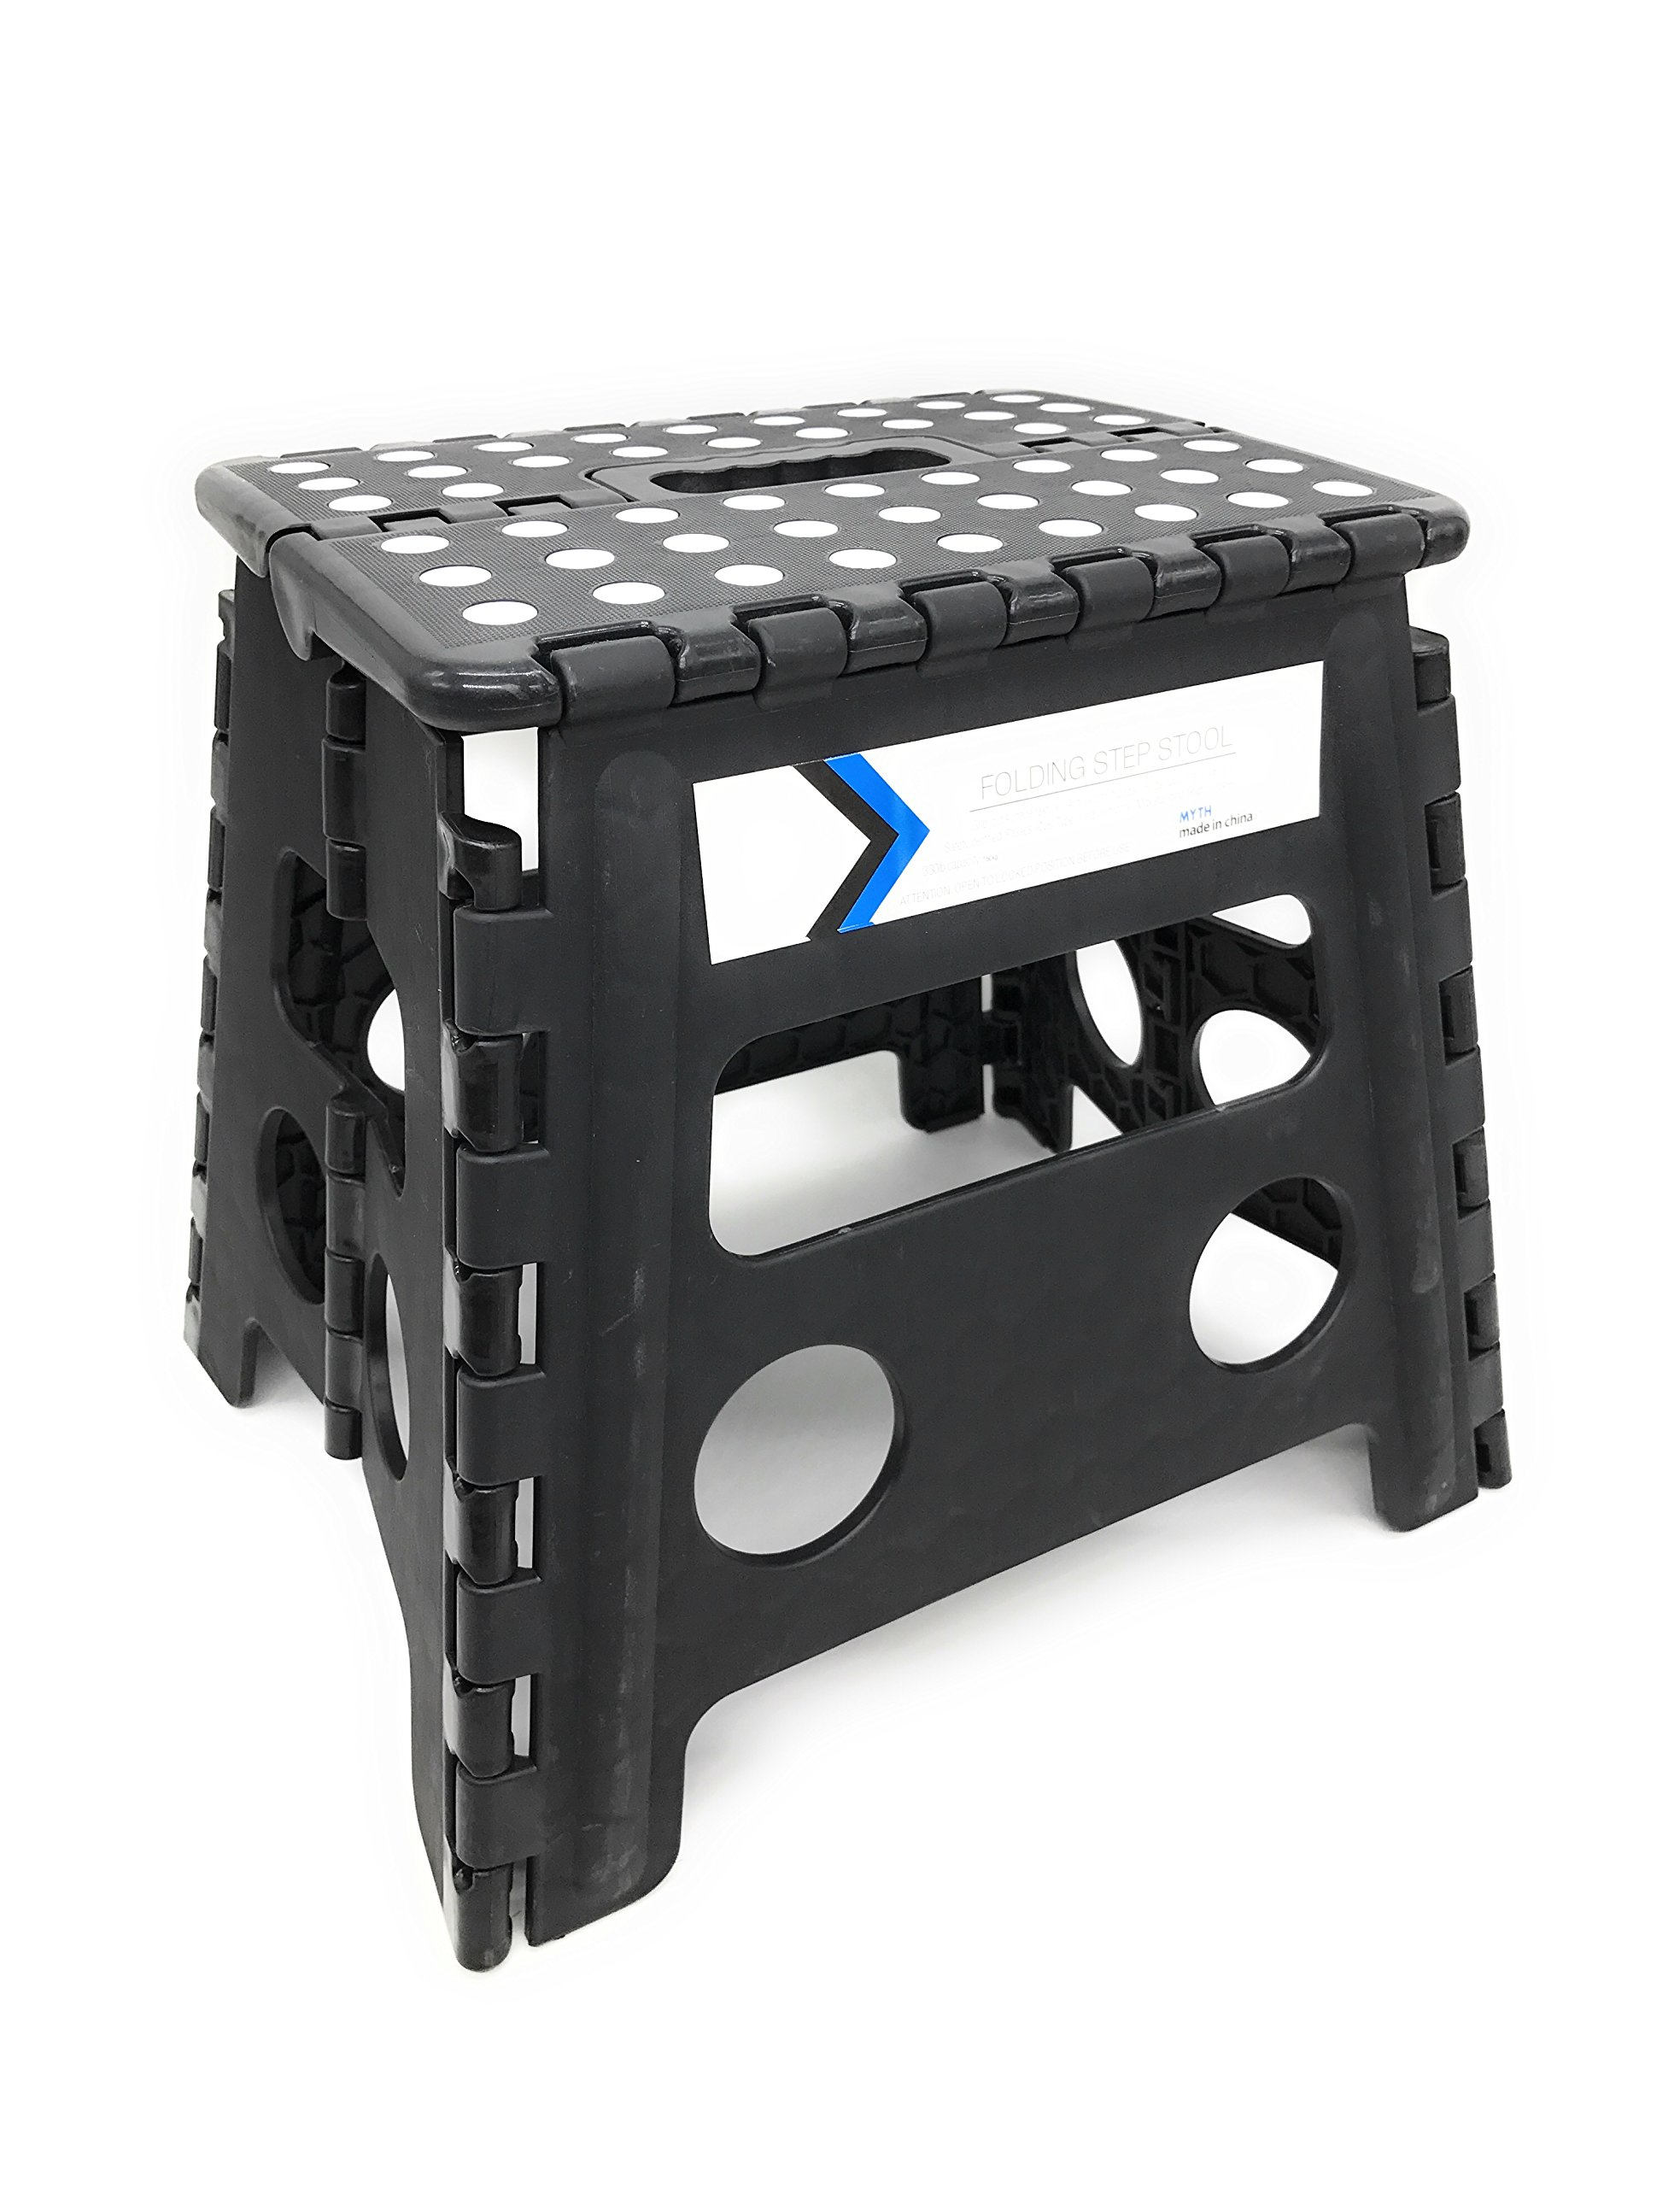 Folding Step Stool 13 Inches Height By Myth With Anti Slip Surface Great  For Kitchen